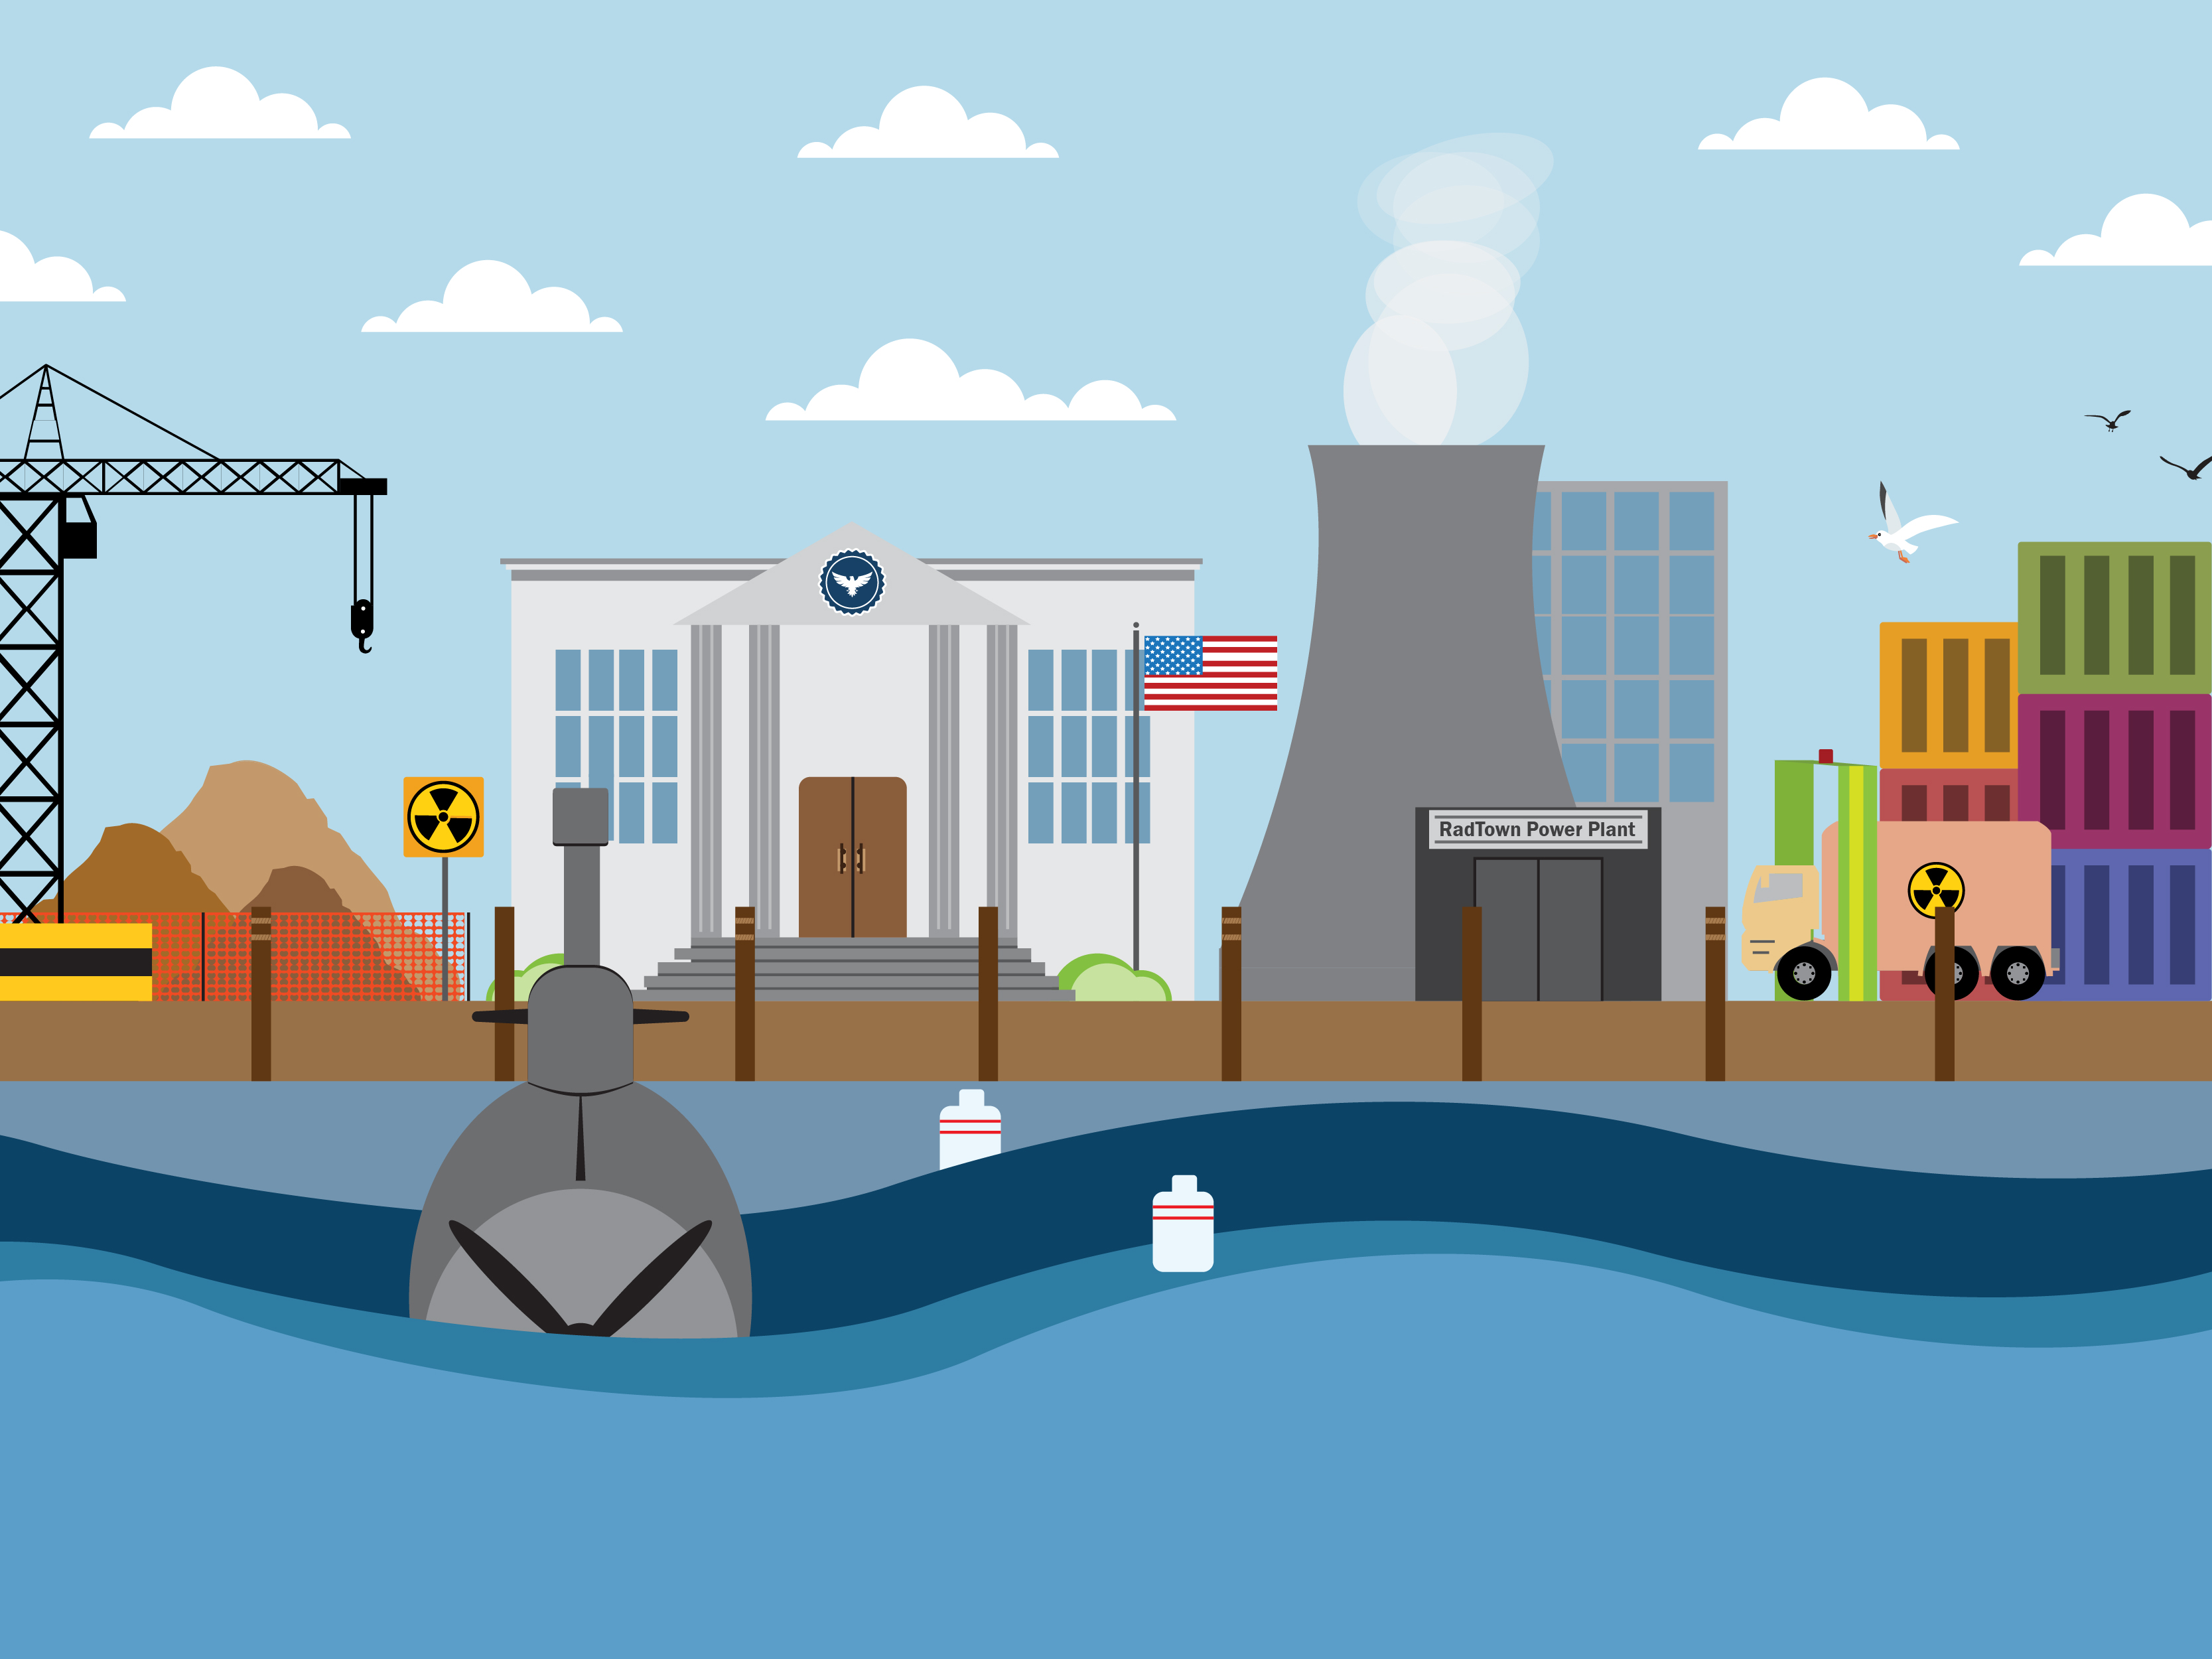 Image of RadTown Waterfront with a military building, cleanup site, truck transporting radioactive material and submarine.